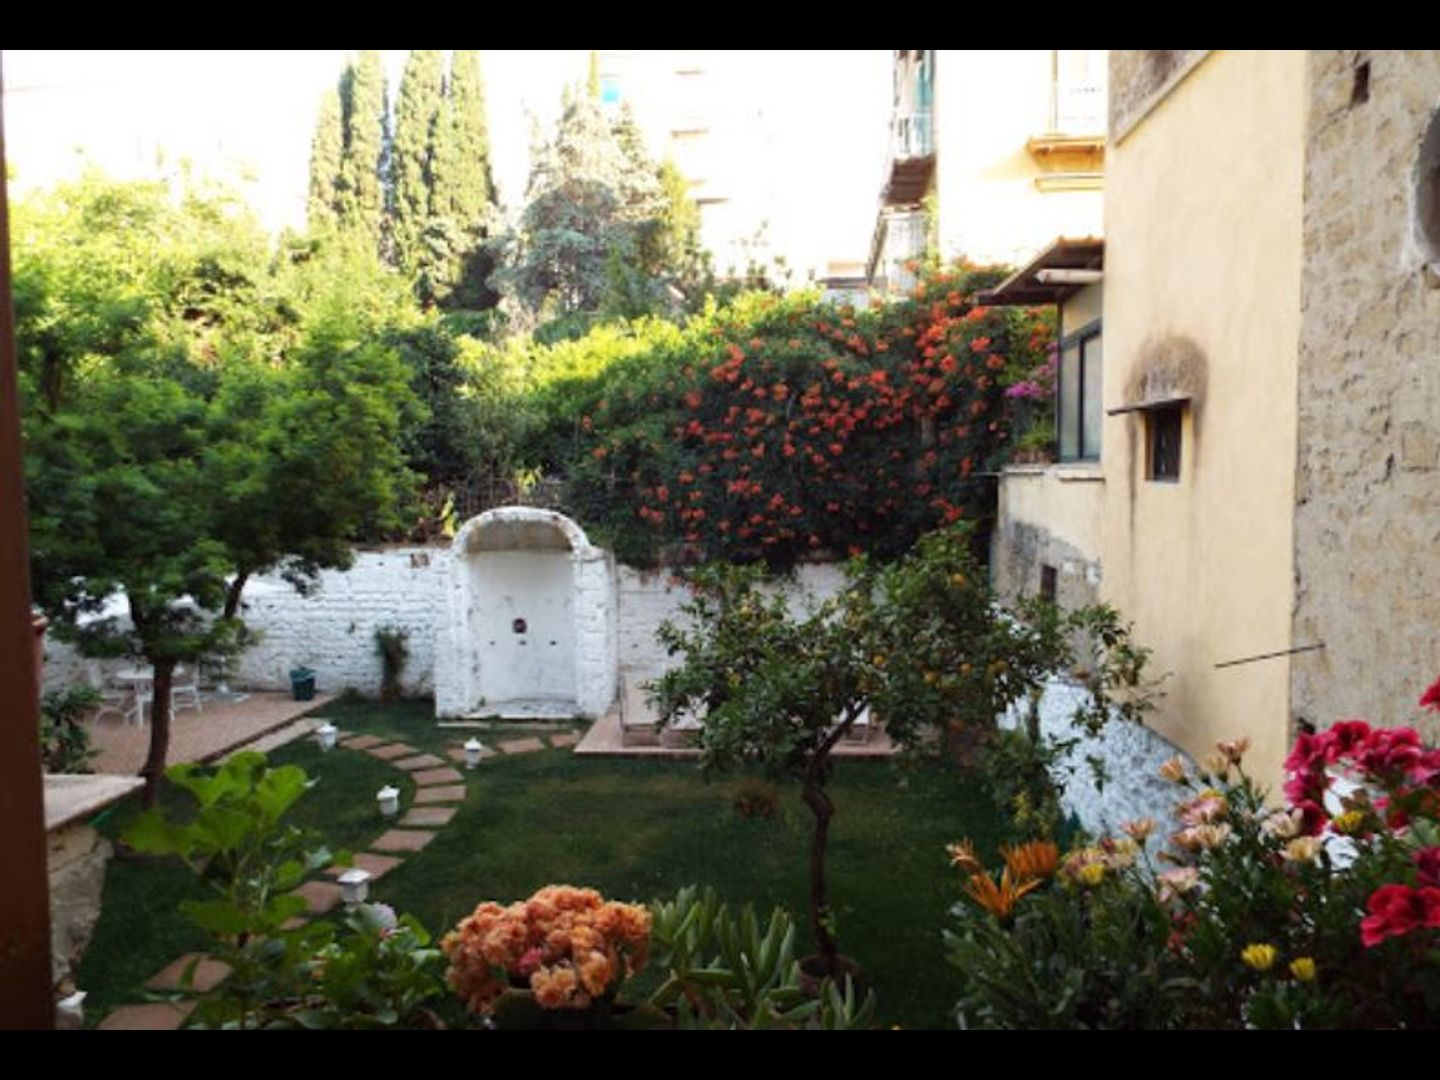 A house with trees in the background at B&B Ingiropernapoli.